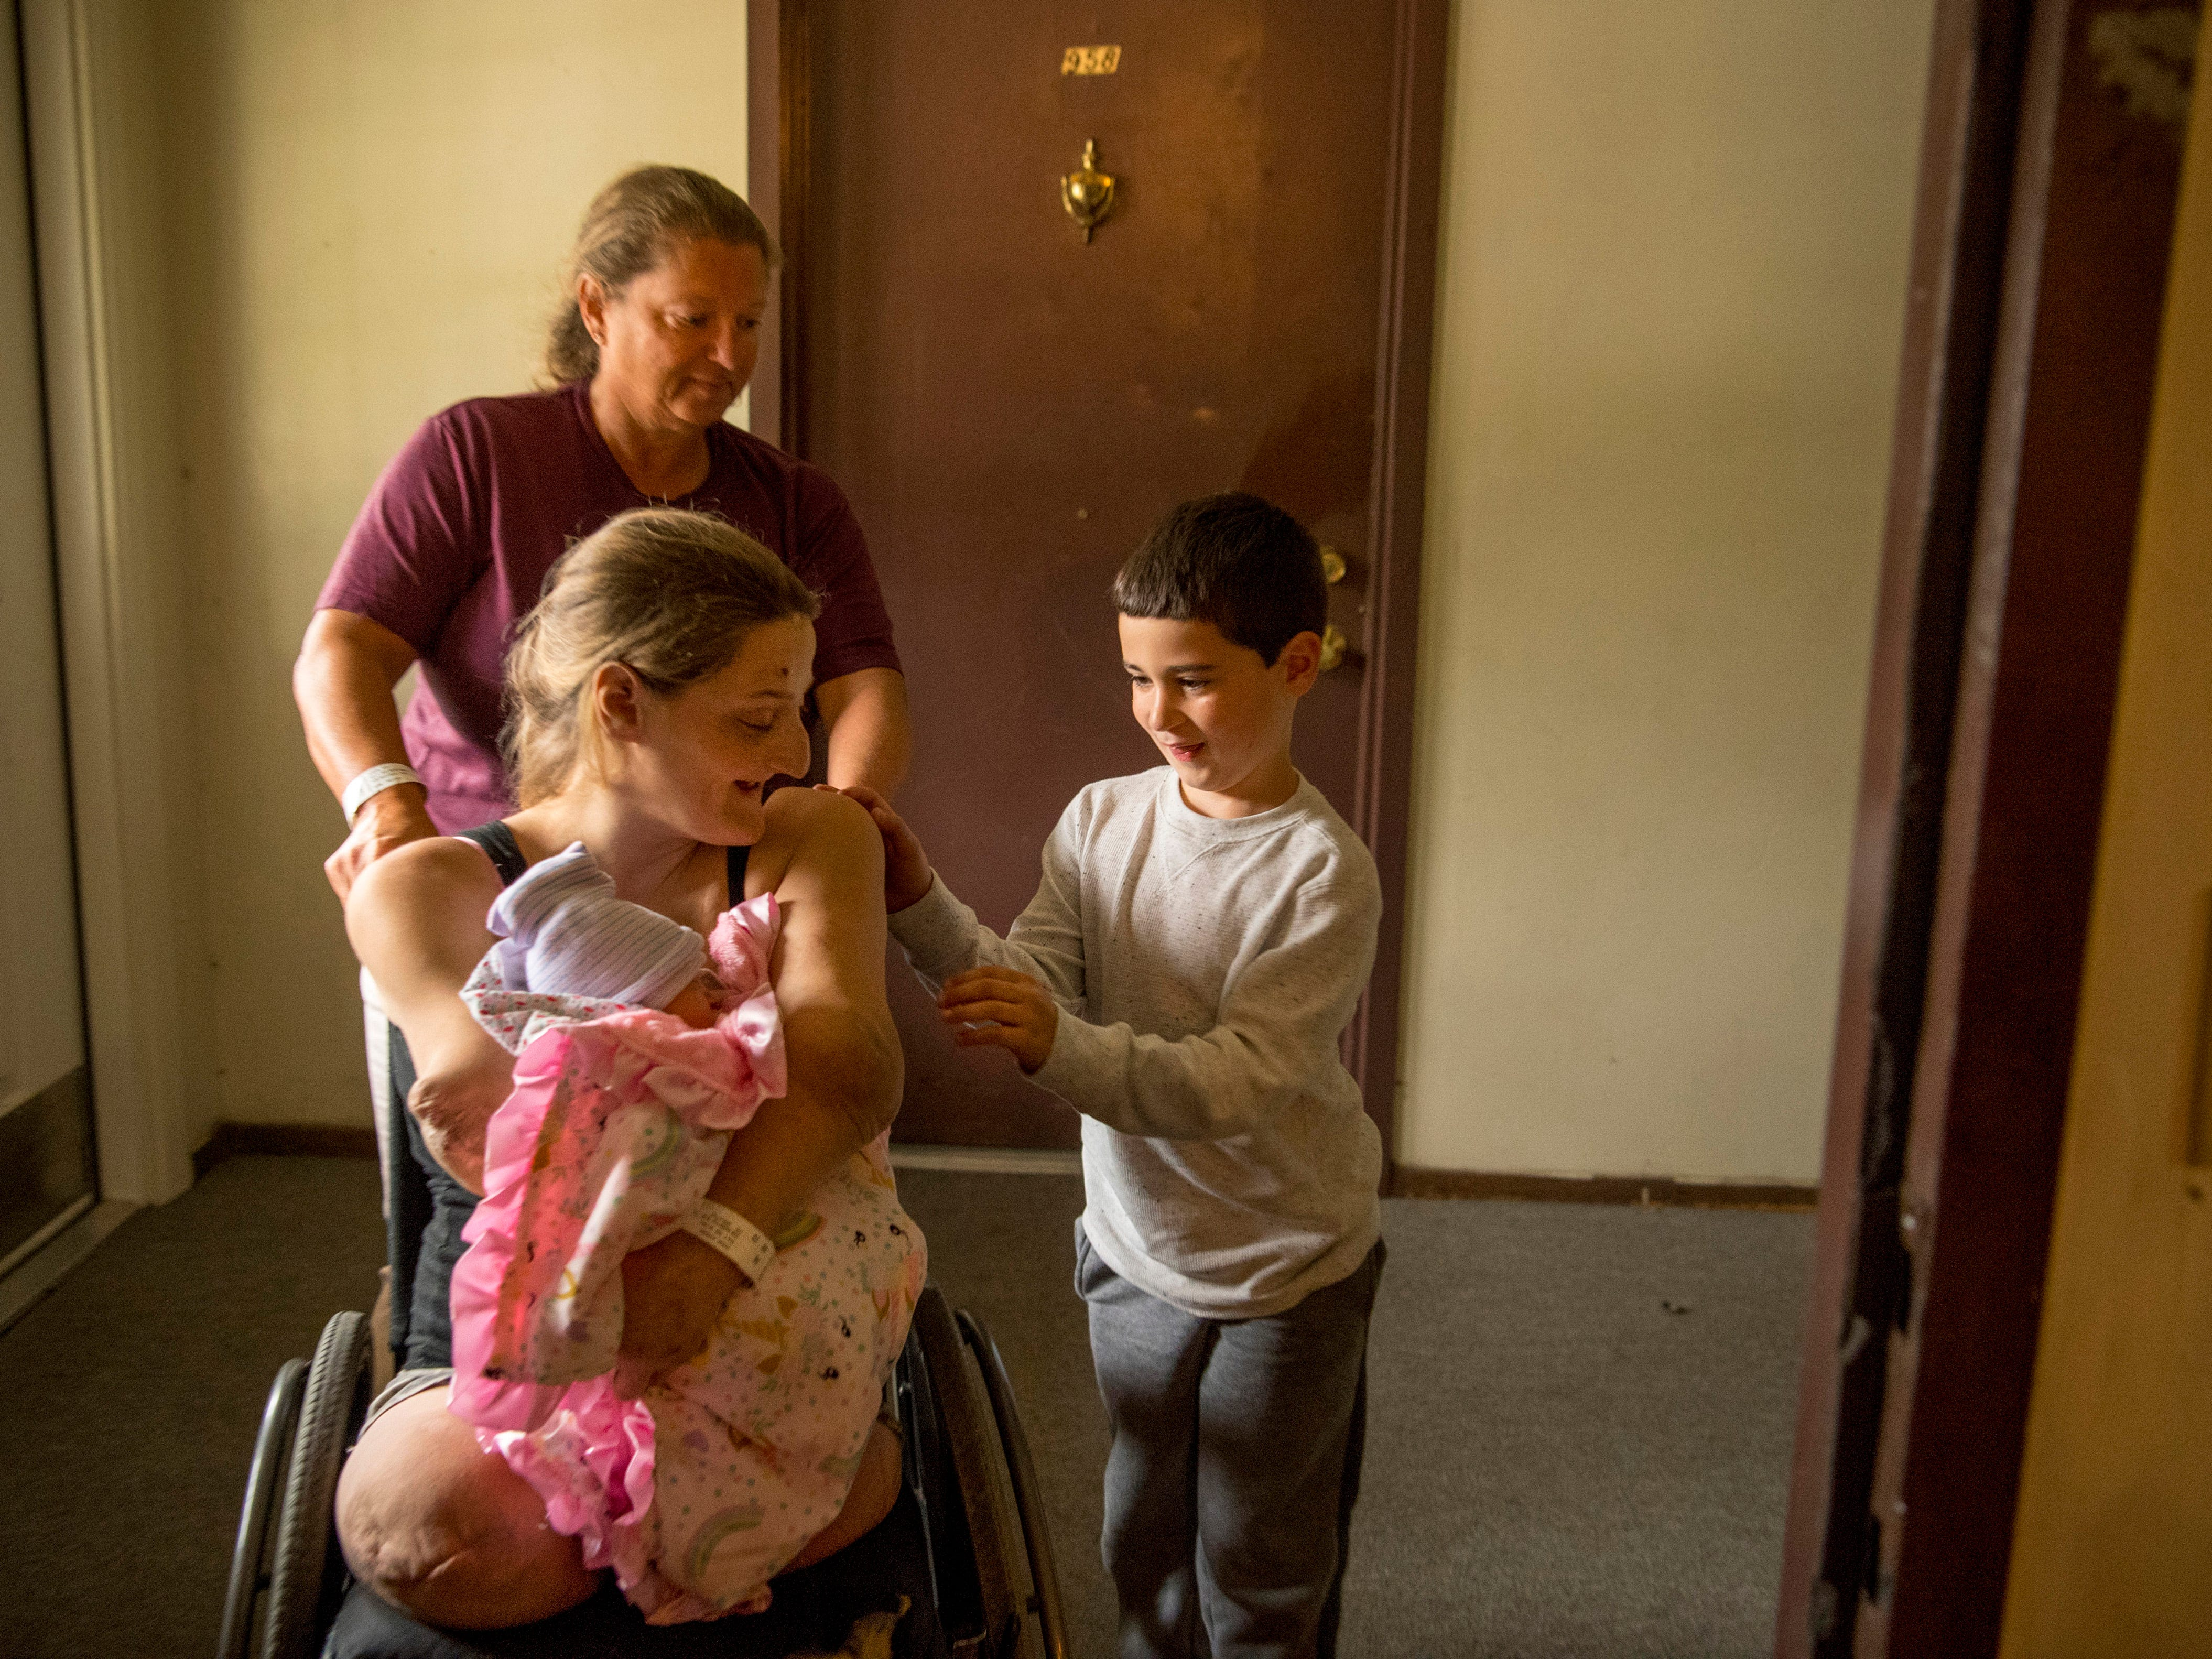 Leland, 6, sees his new baby sister for the first time as his mom, Amanda Smith, arrives home from the hospital Monday afternoon, Sept. 24, 2018. Amanda's aunt, Rosanna Funkhouser, provided the pushing power into their Mount Vernon, Ind., apartment.